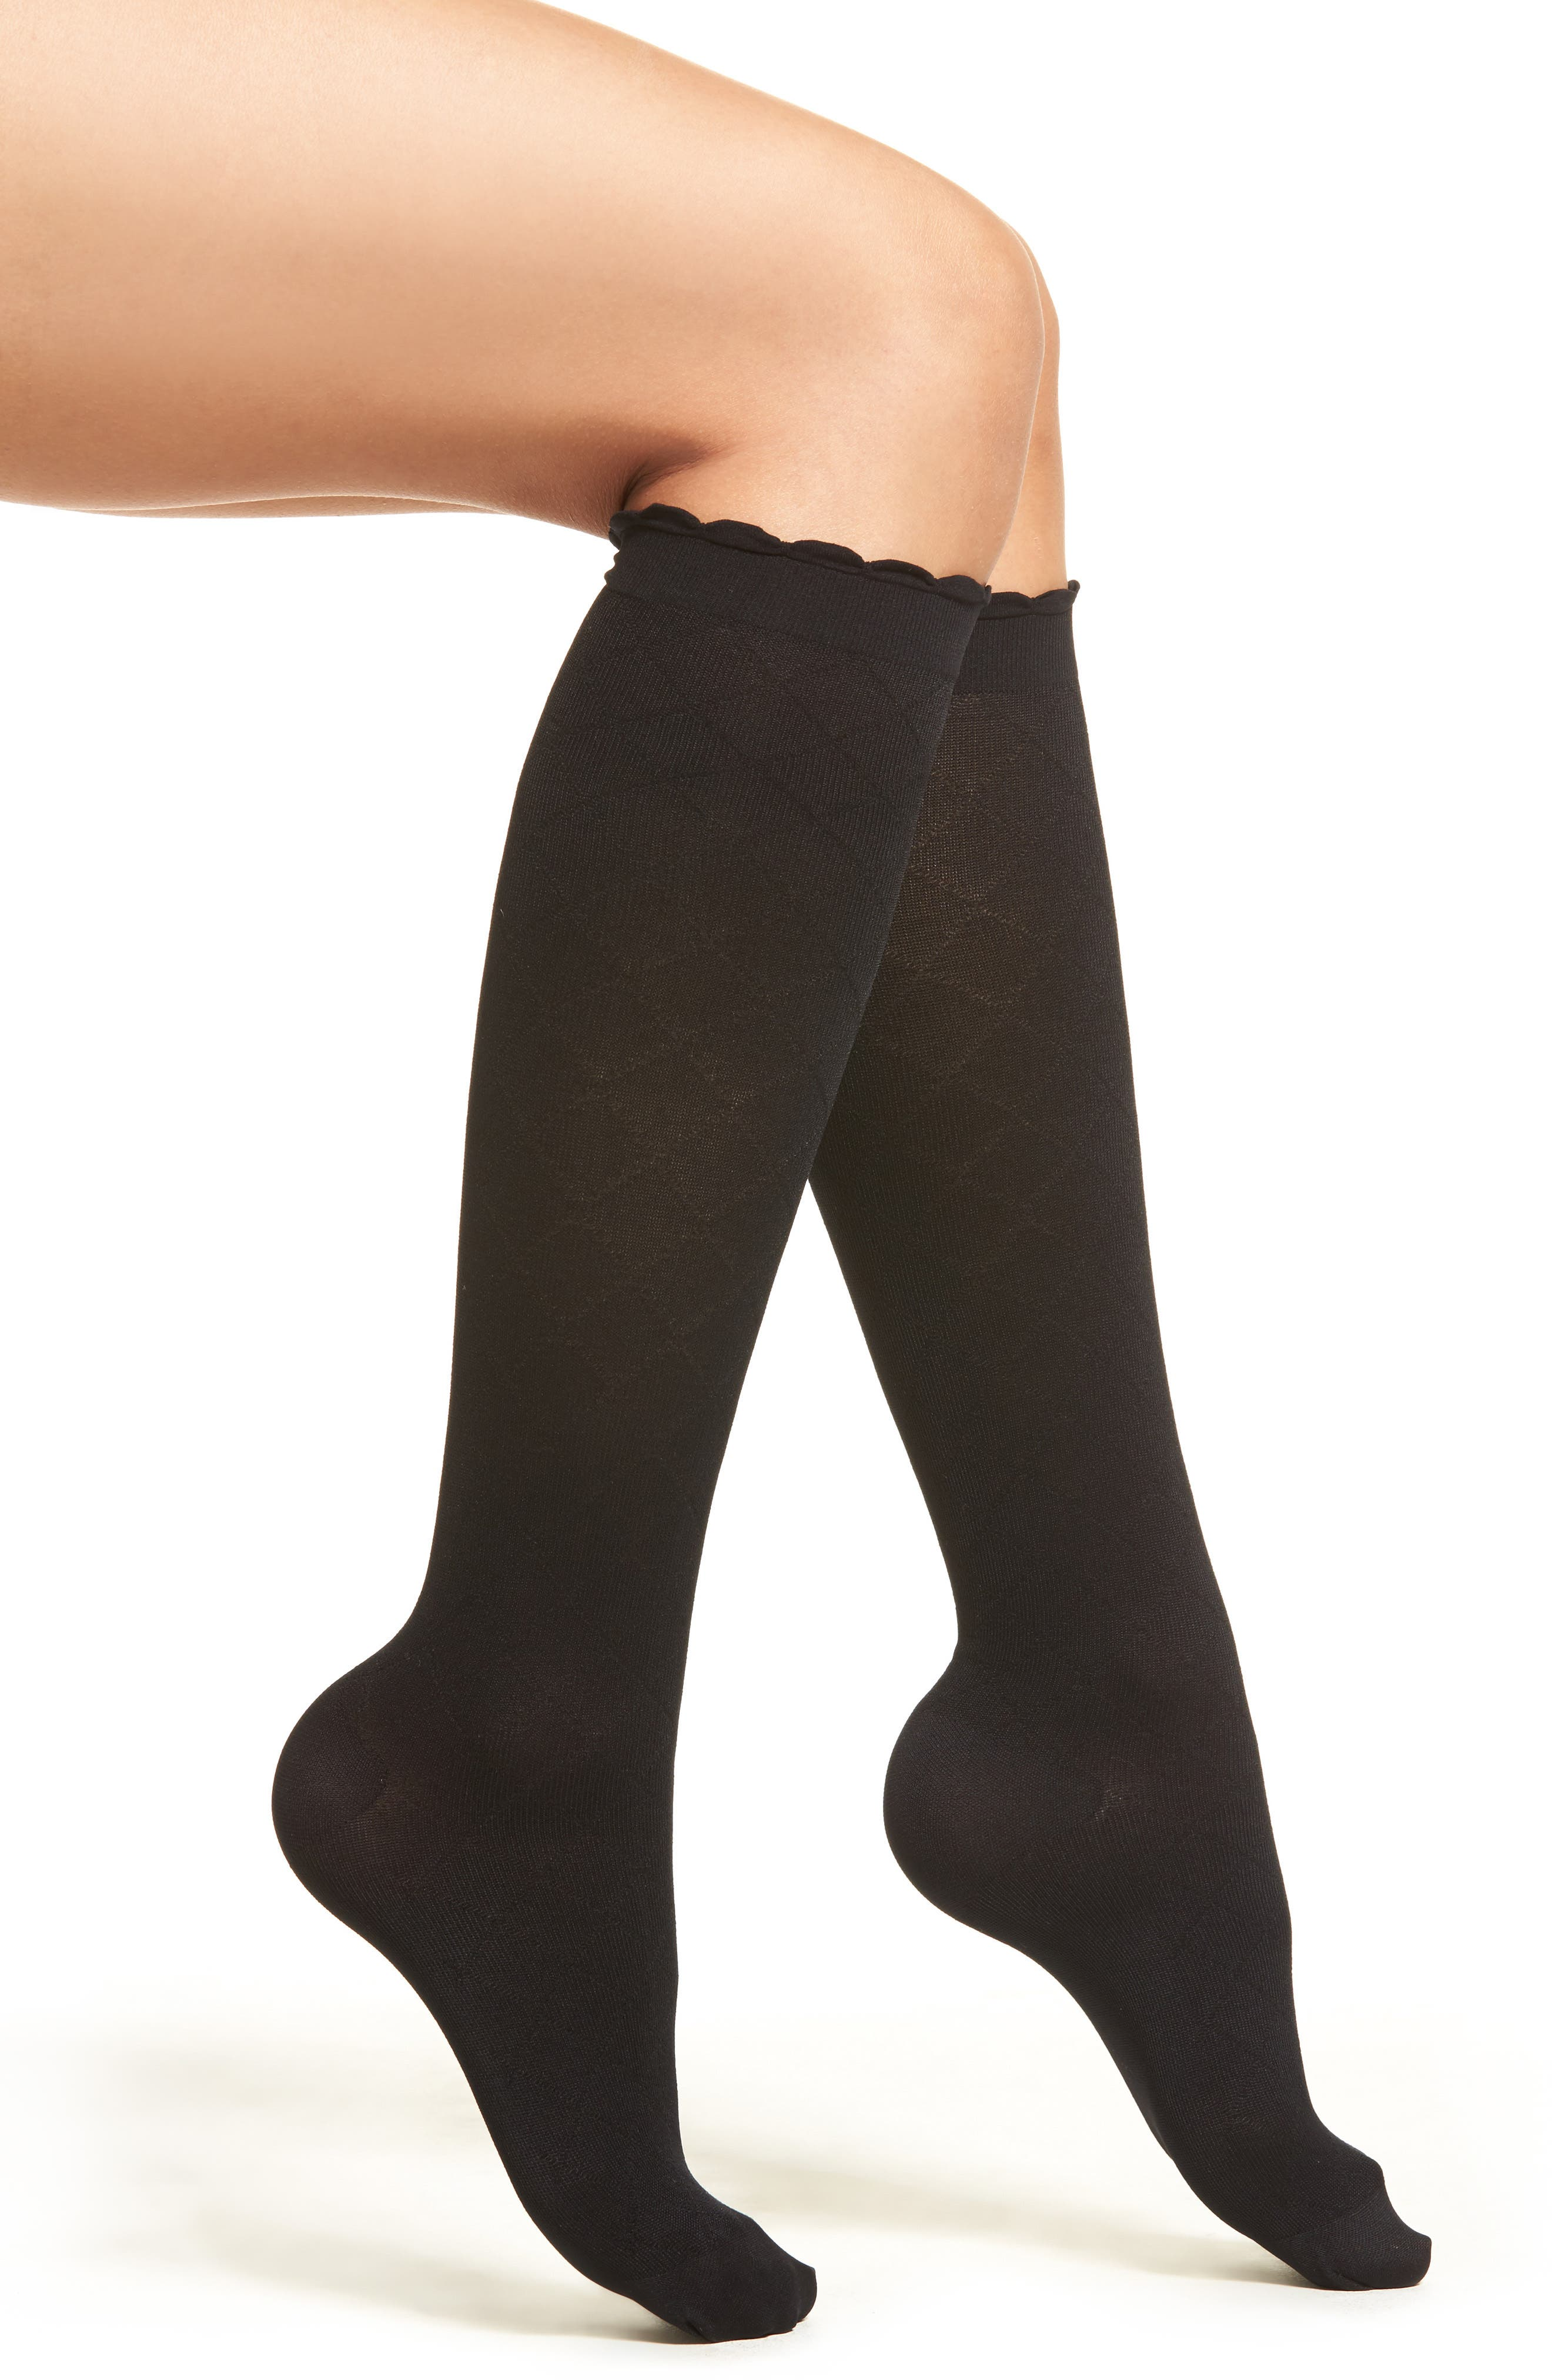 Diamond Compression Knee High Socks,                         Main,                         color, Black